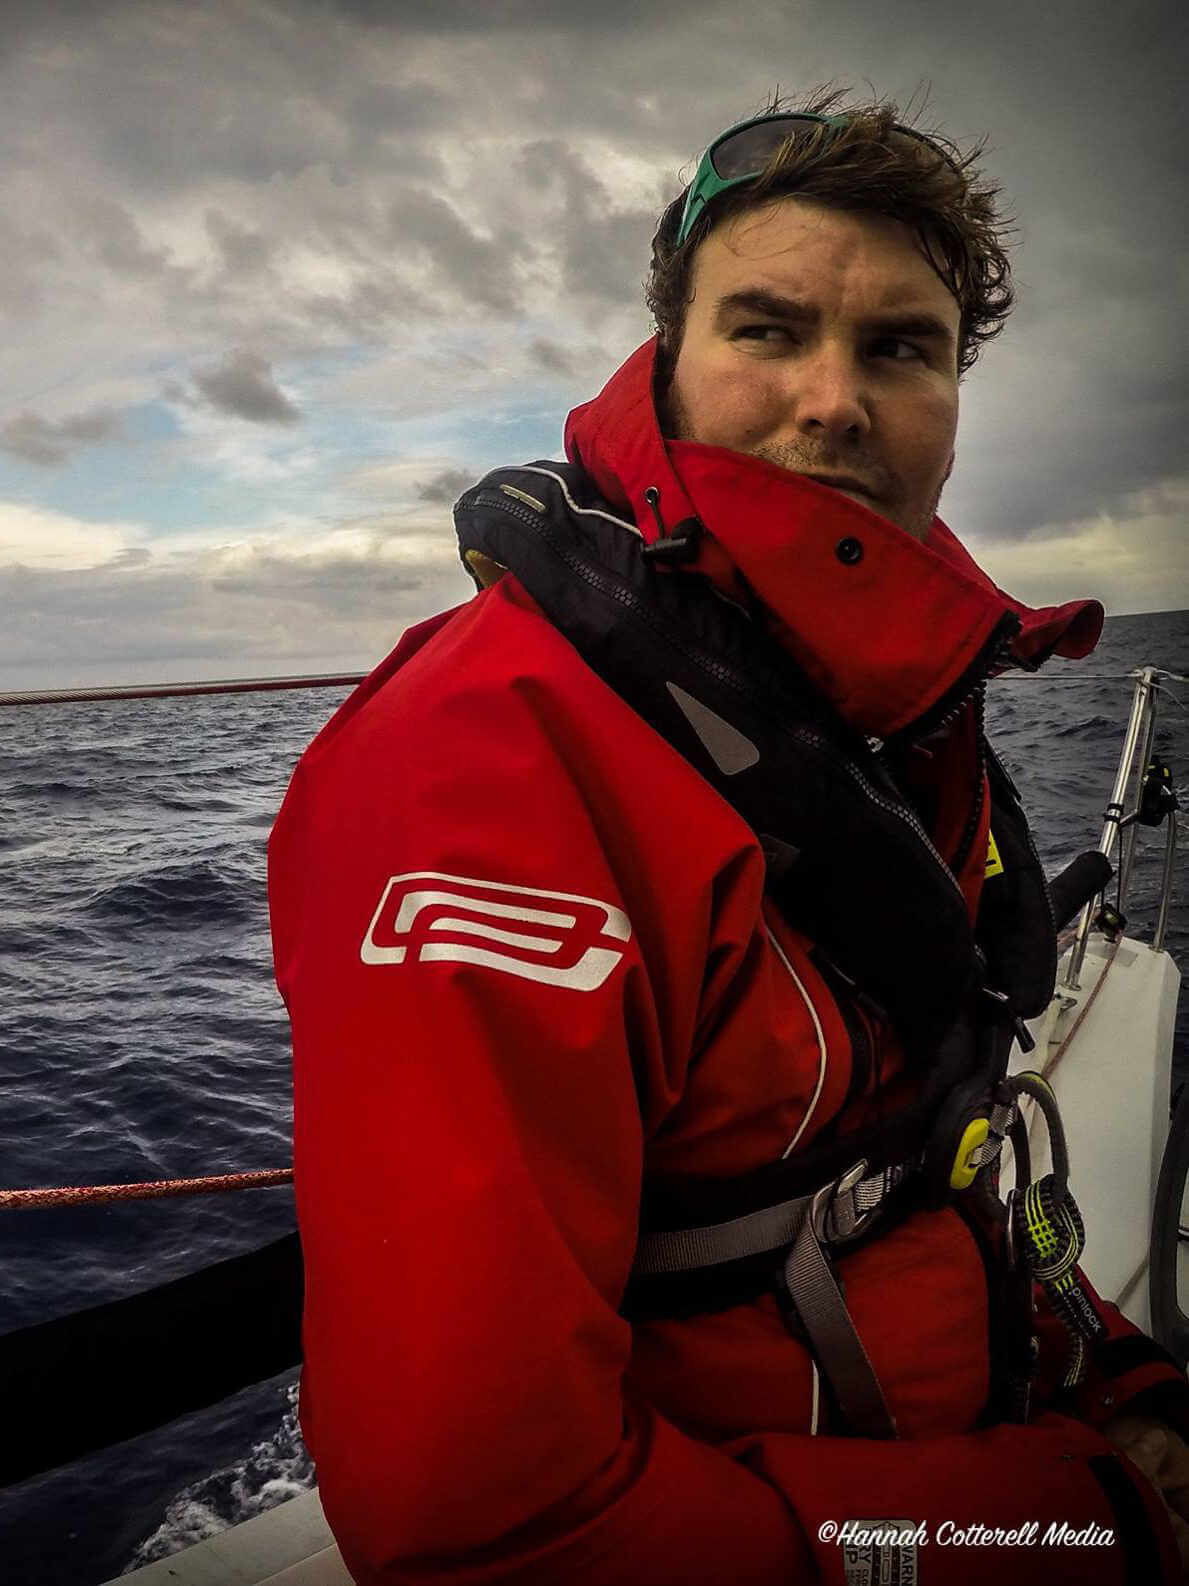 Oliver Cotterell - RYA Yachtmaster Instructor, race skipper and circumnavigator